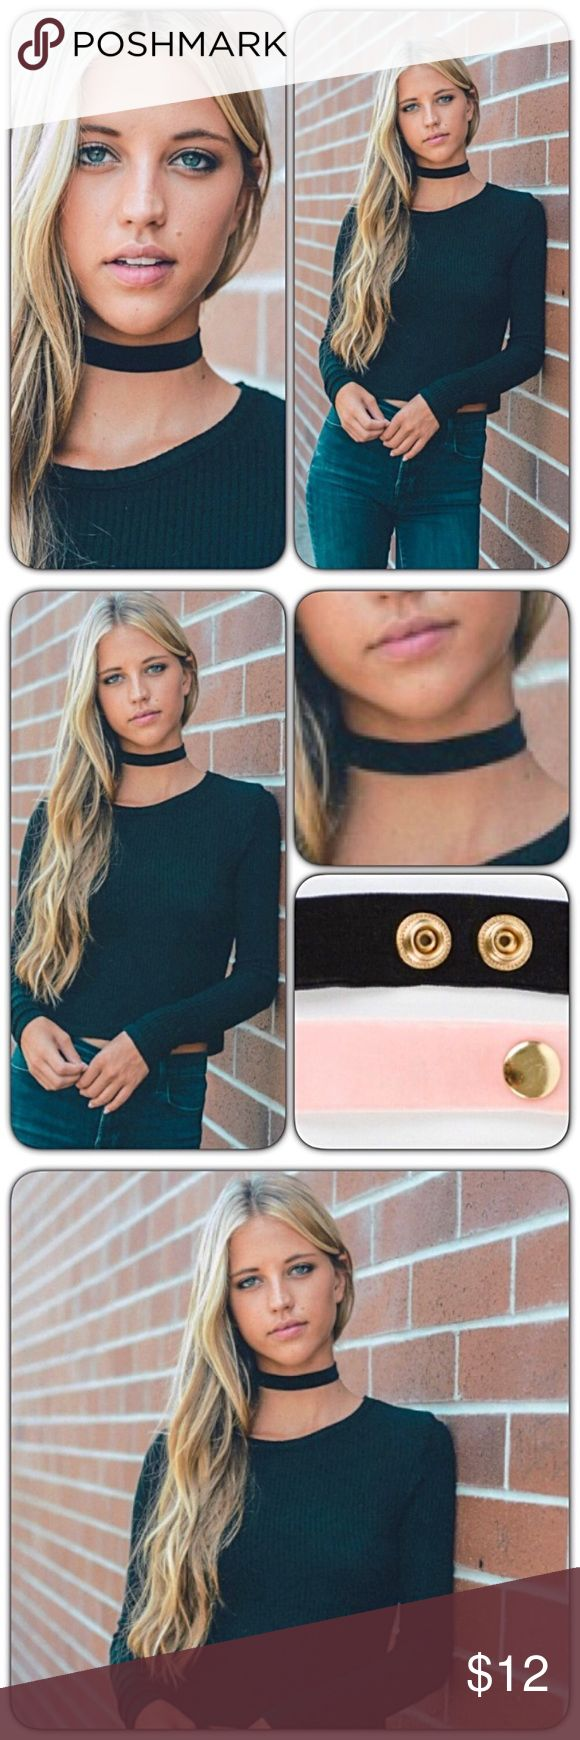 "Bohemian Black Velvet Stretchy Choker Necklace We are in love with this beautiful black velvet choker necklace. Stretchy with gold snap closure. 13.8"" x 0.8"" Bundle & save✅ Dainty Boho Statement. Available in blush in separate listing🌷 Jewelry Necklaces"